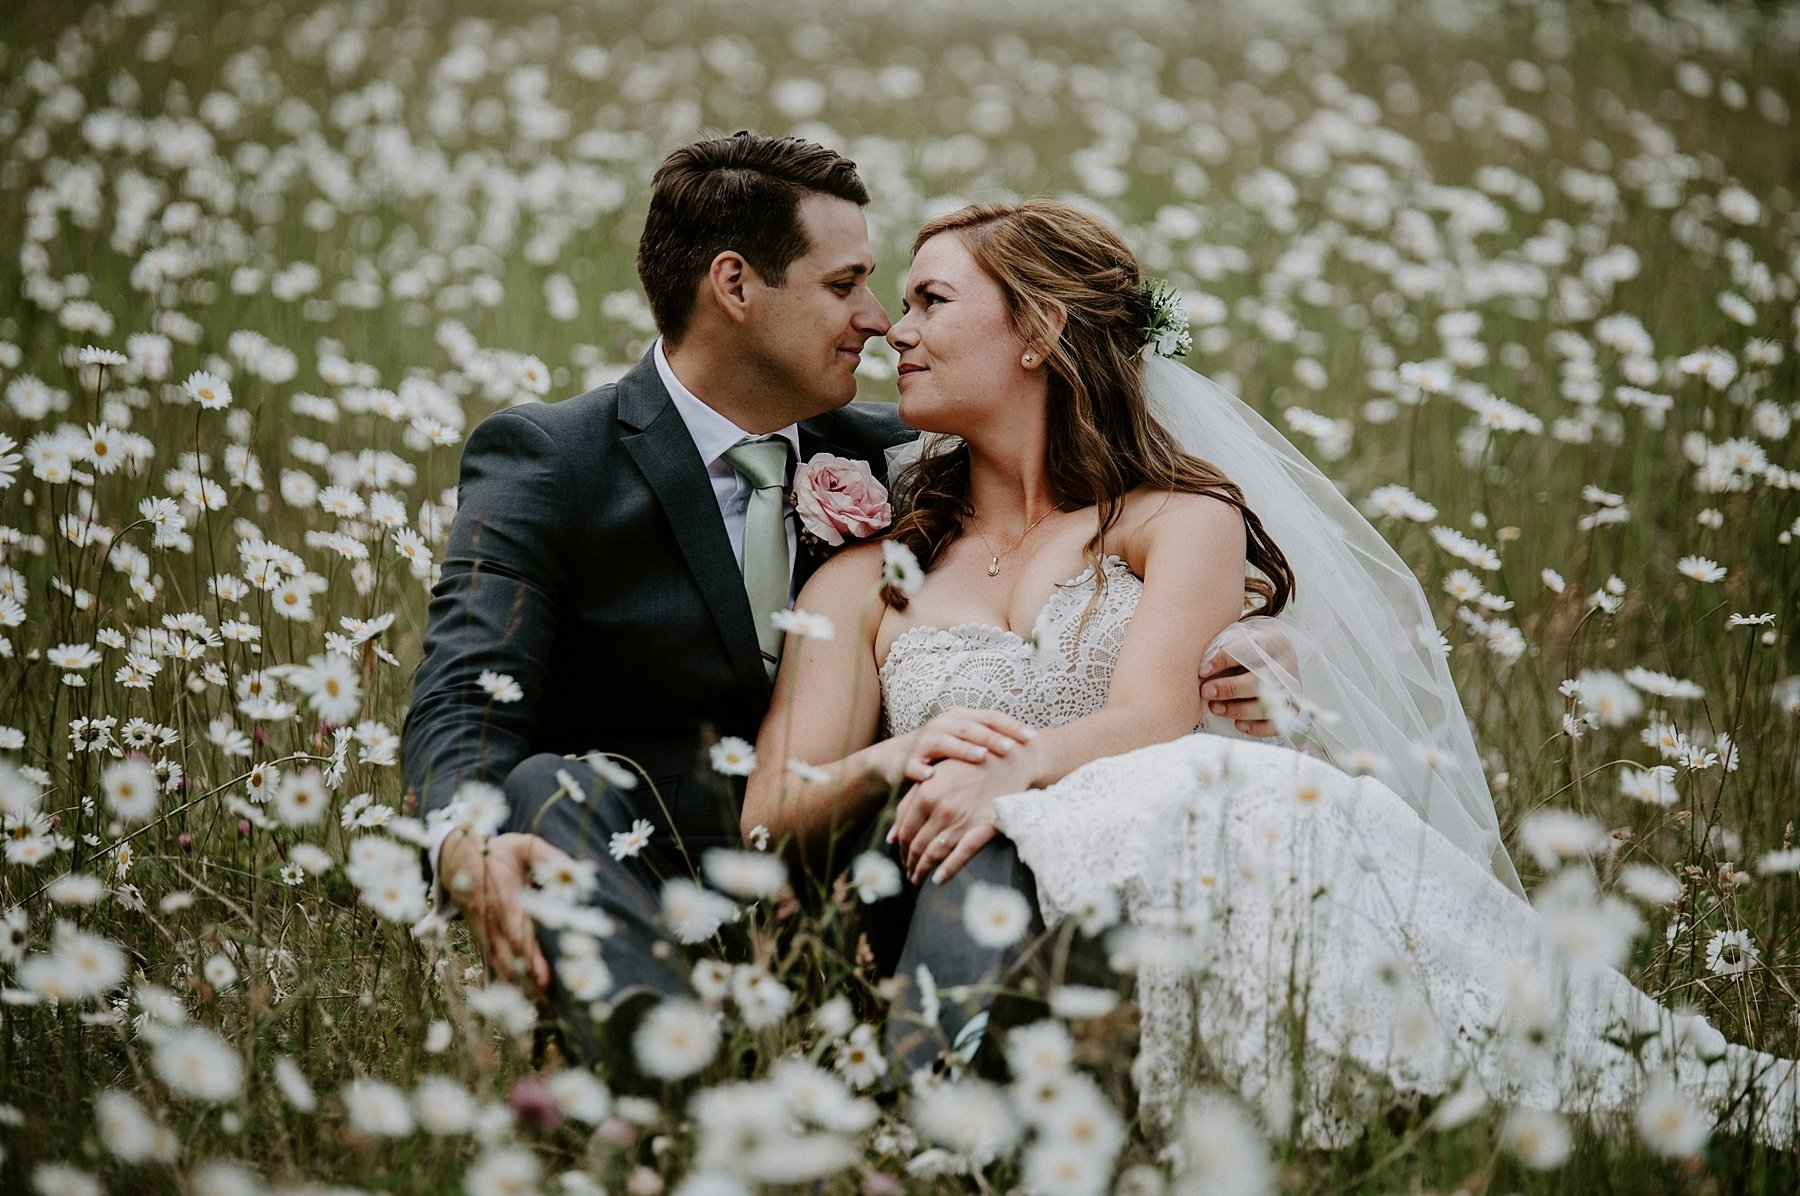 field of daisies wedding photos